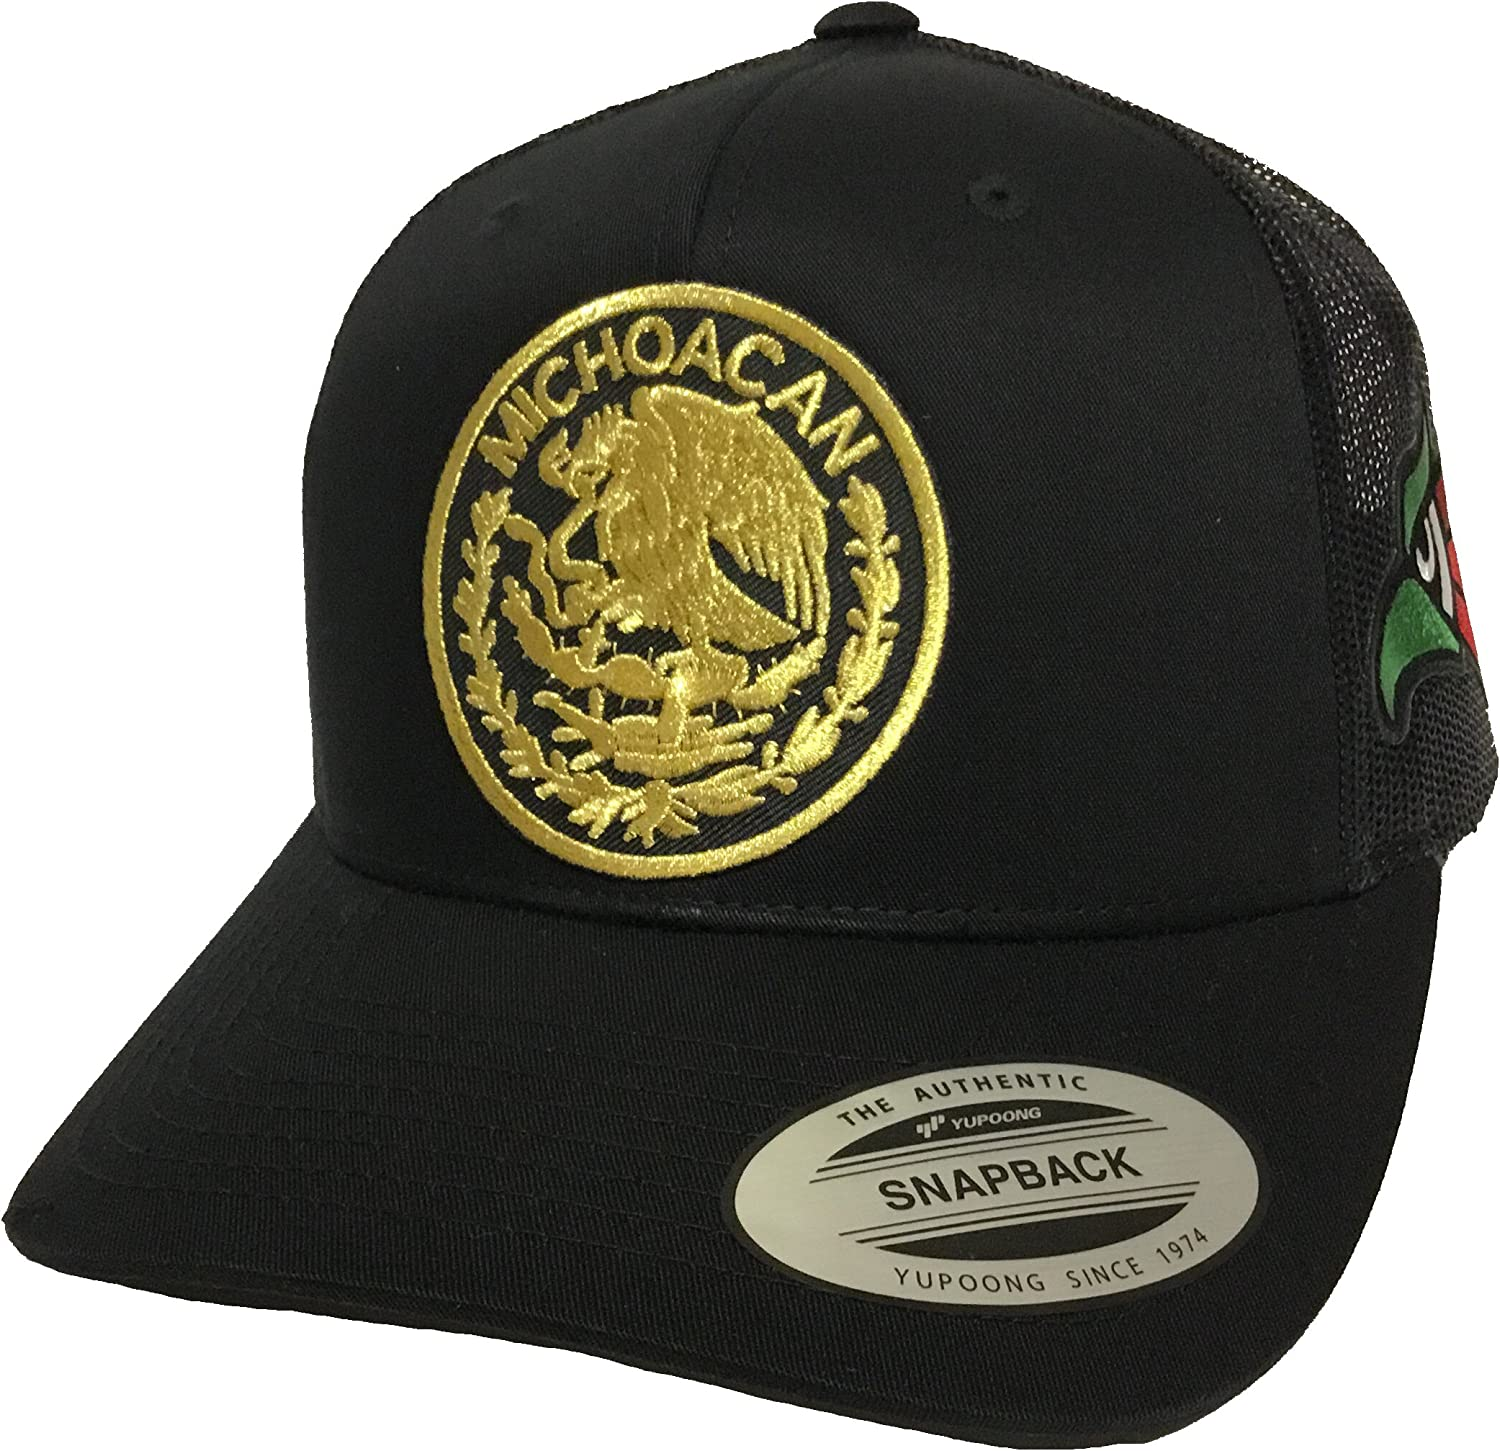 Michoacan Logo Federal 2 Logos /águila 3 Colors a lado Hat Black mesh v//d//